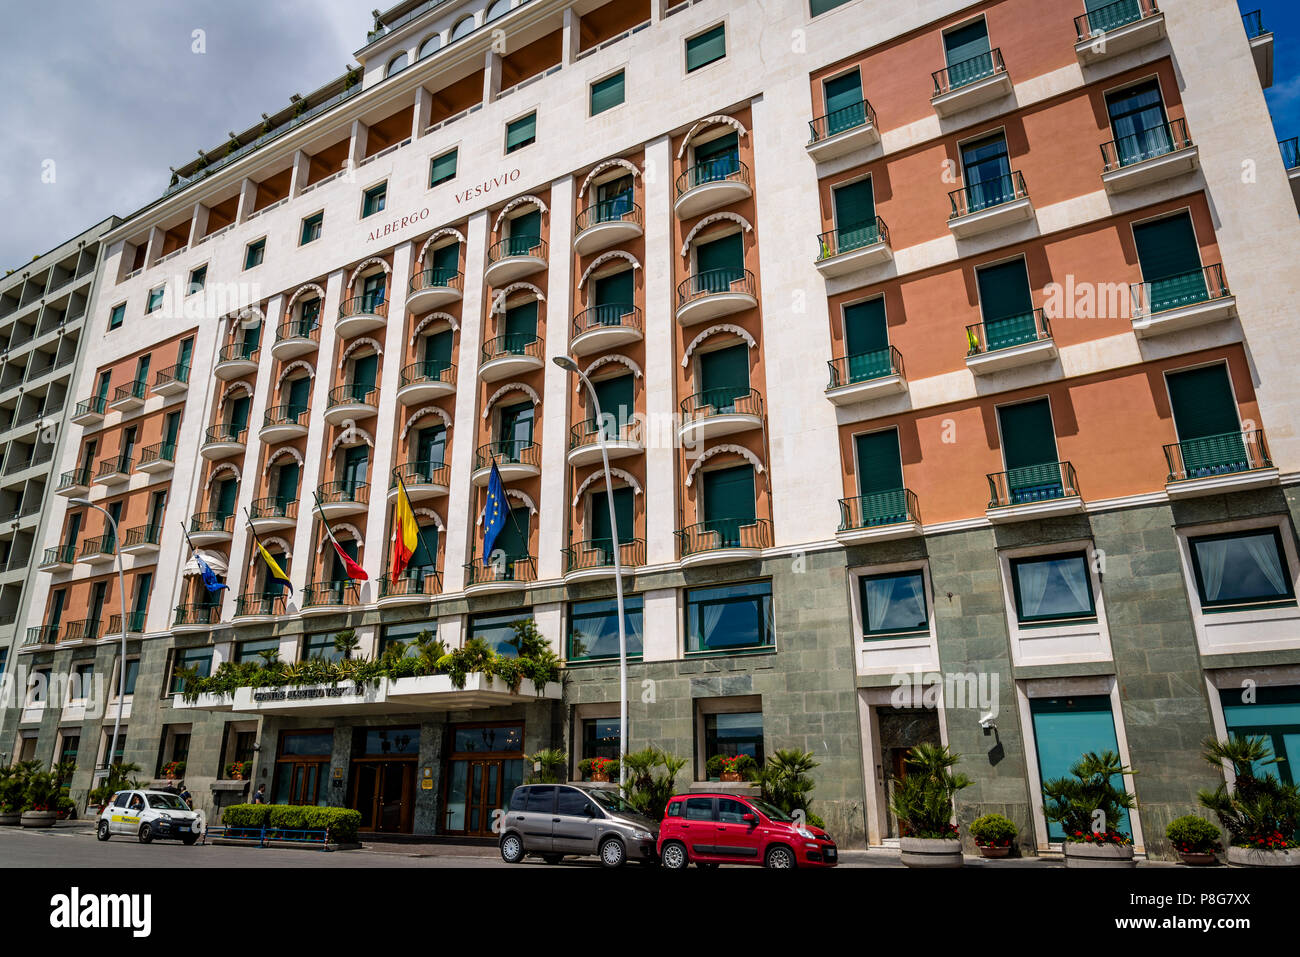 Grand Hotel Vesuvio High Resolution Stock Photography And Images Alamy